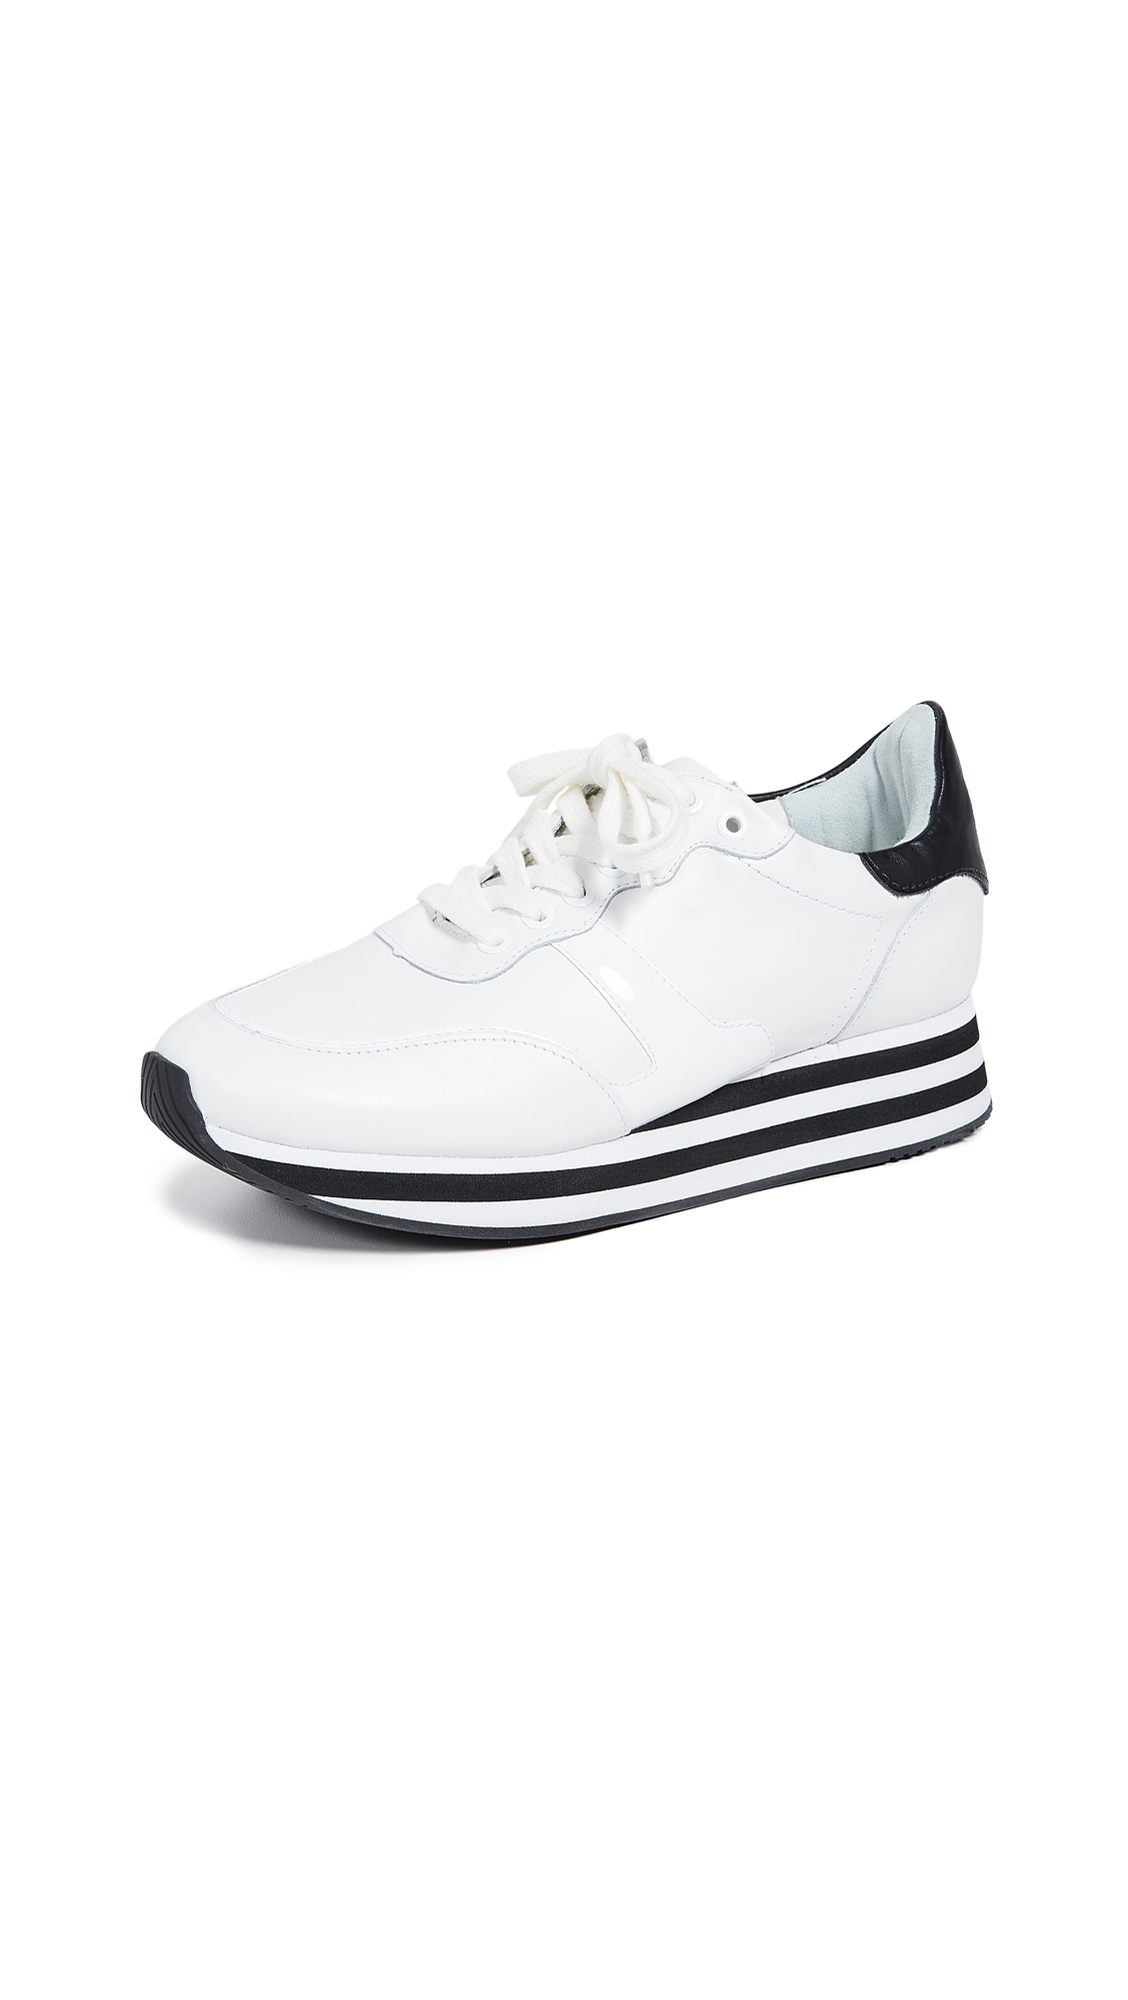 alice + olivia Magman Sneakers - White/ Black